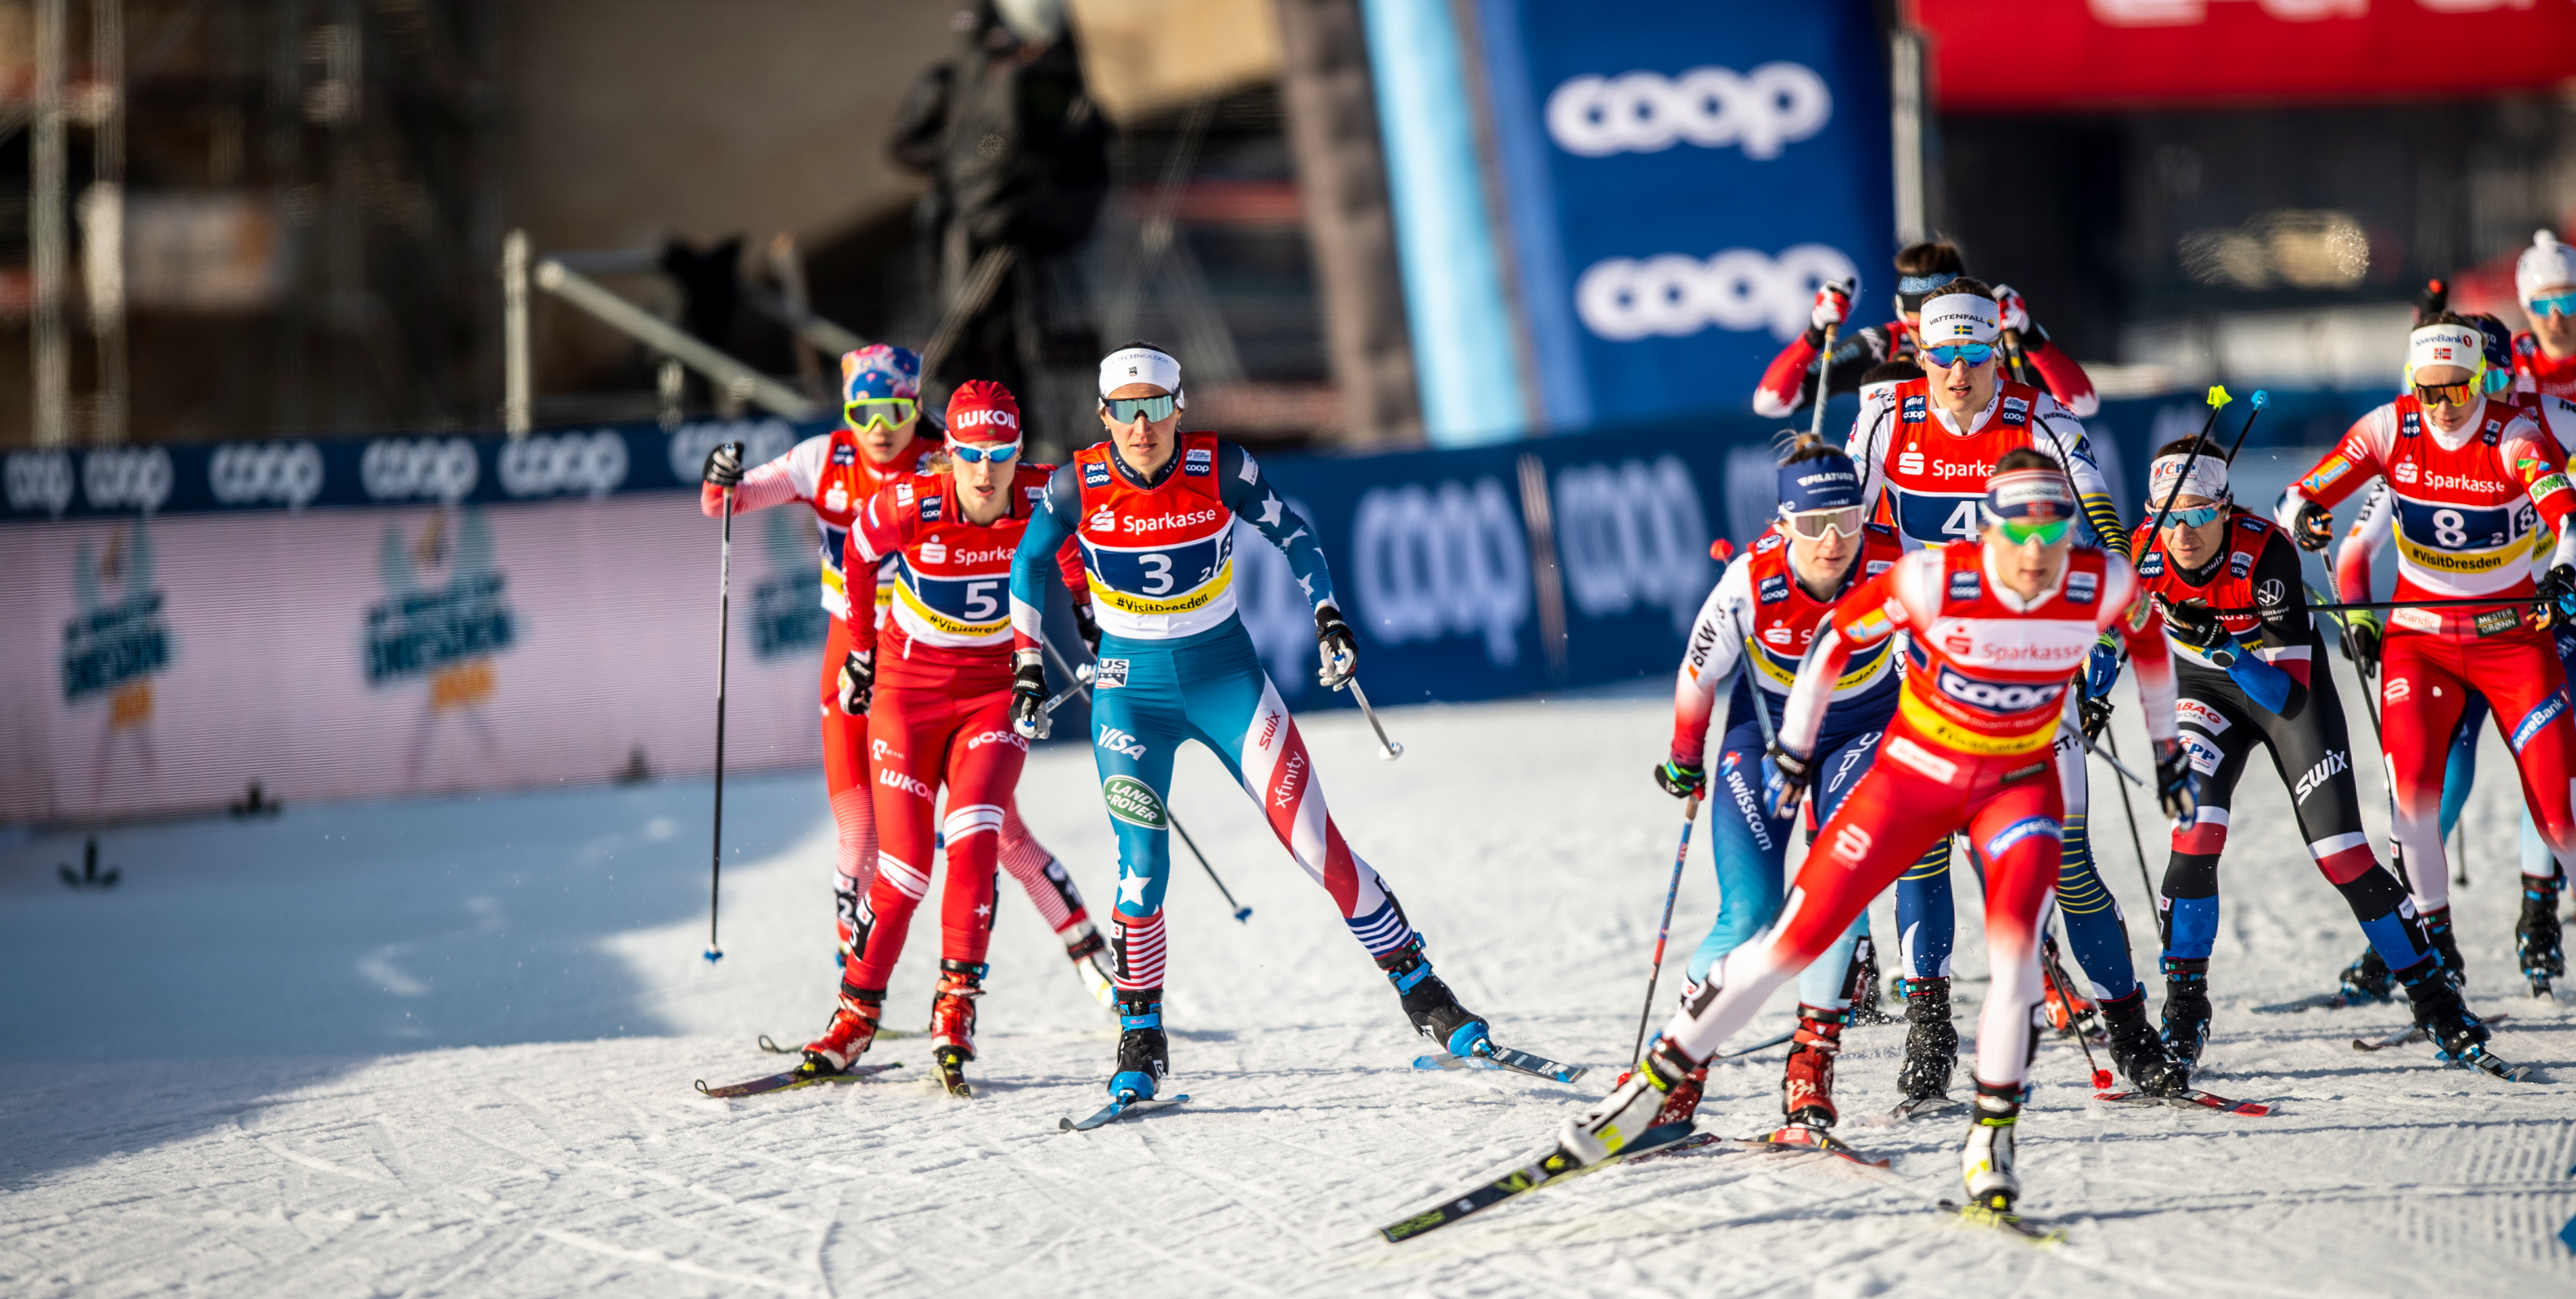 Julia Kern and Sophie Caldwell teamed up to finish fifth in the Team Sprint Sunday in Germany. (www.nordicfocus.com. © Thibaut/NordicFocus)